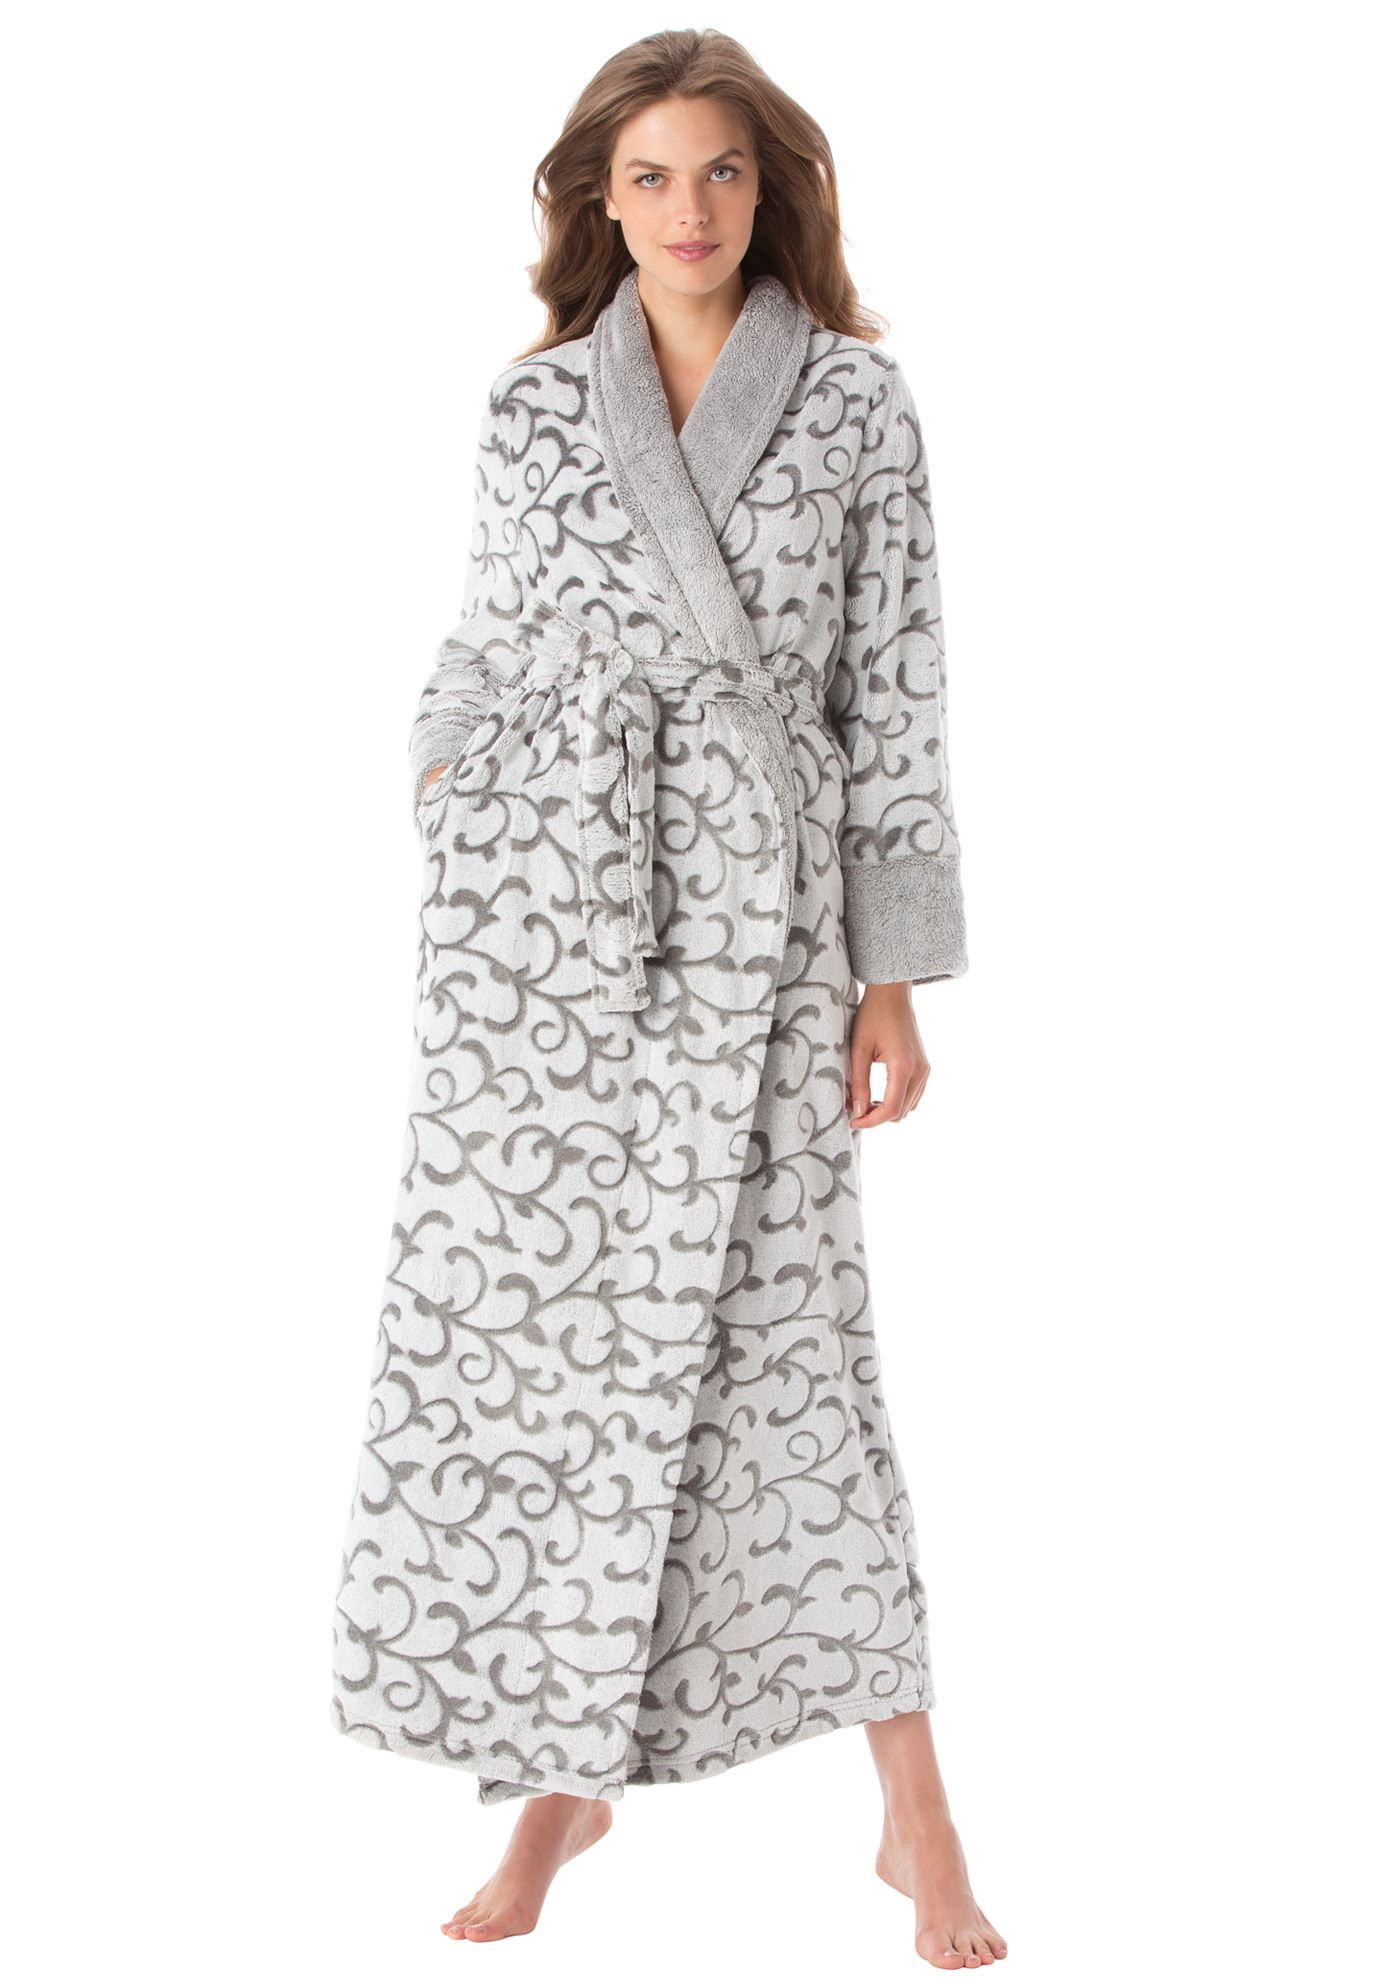 We made a robe in the world s softest plush in a beautiful scrolled